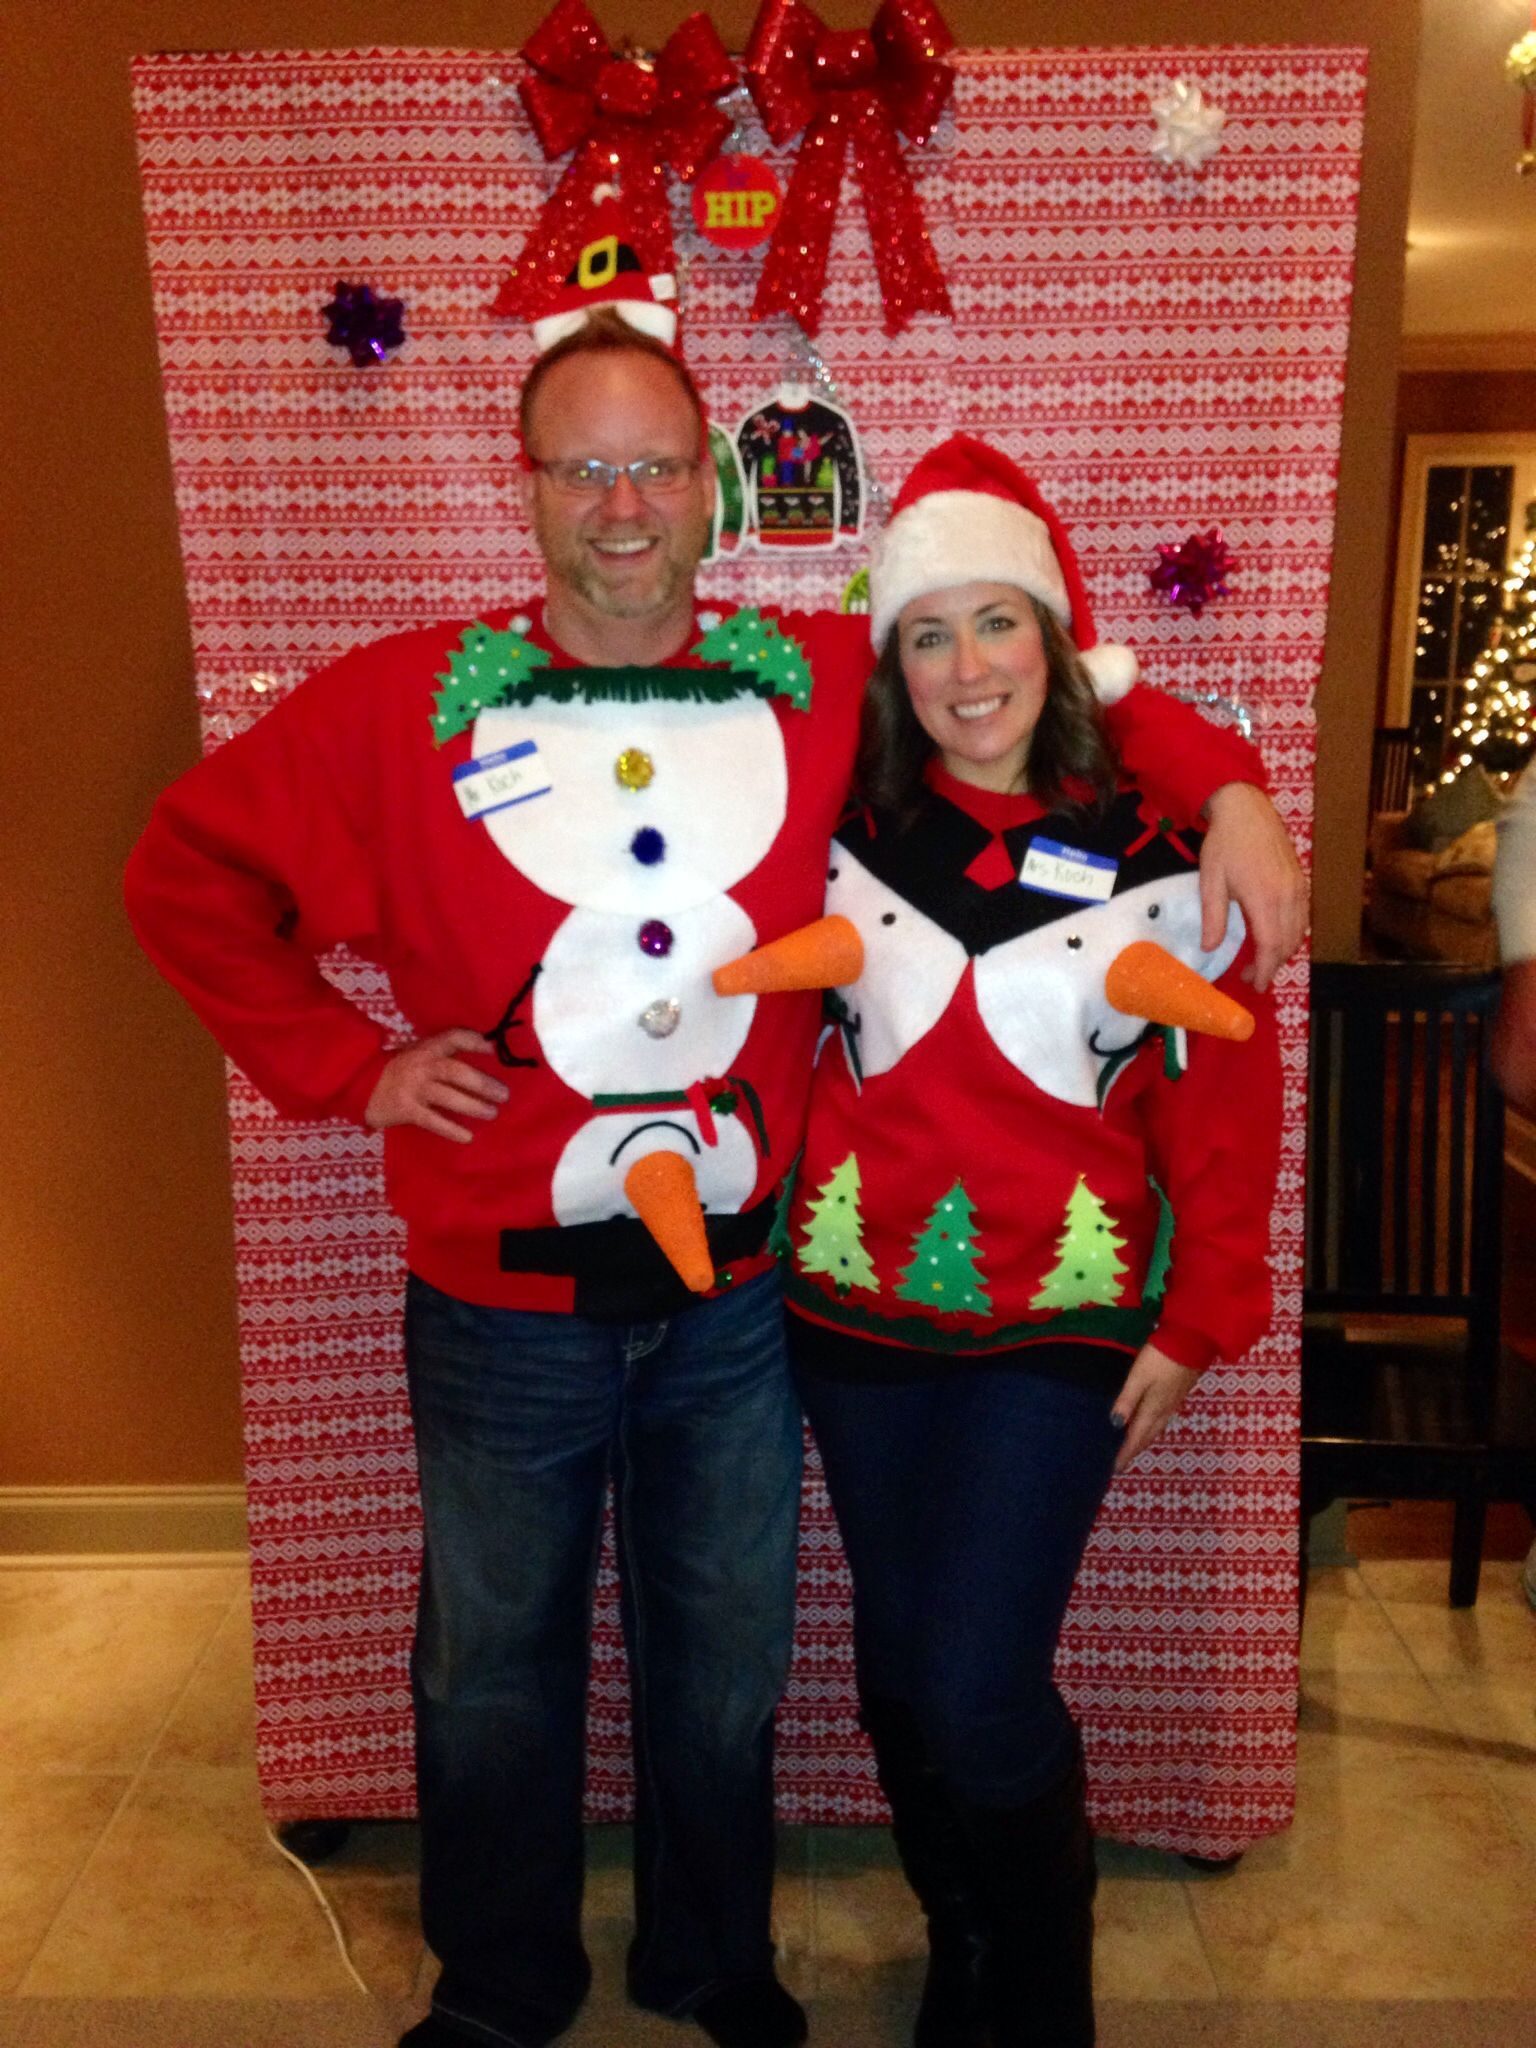 Our homemade tacky Christmas sweaters. First annual party